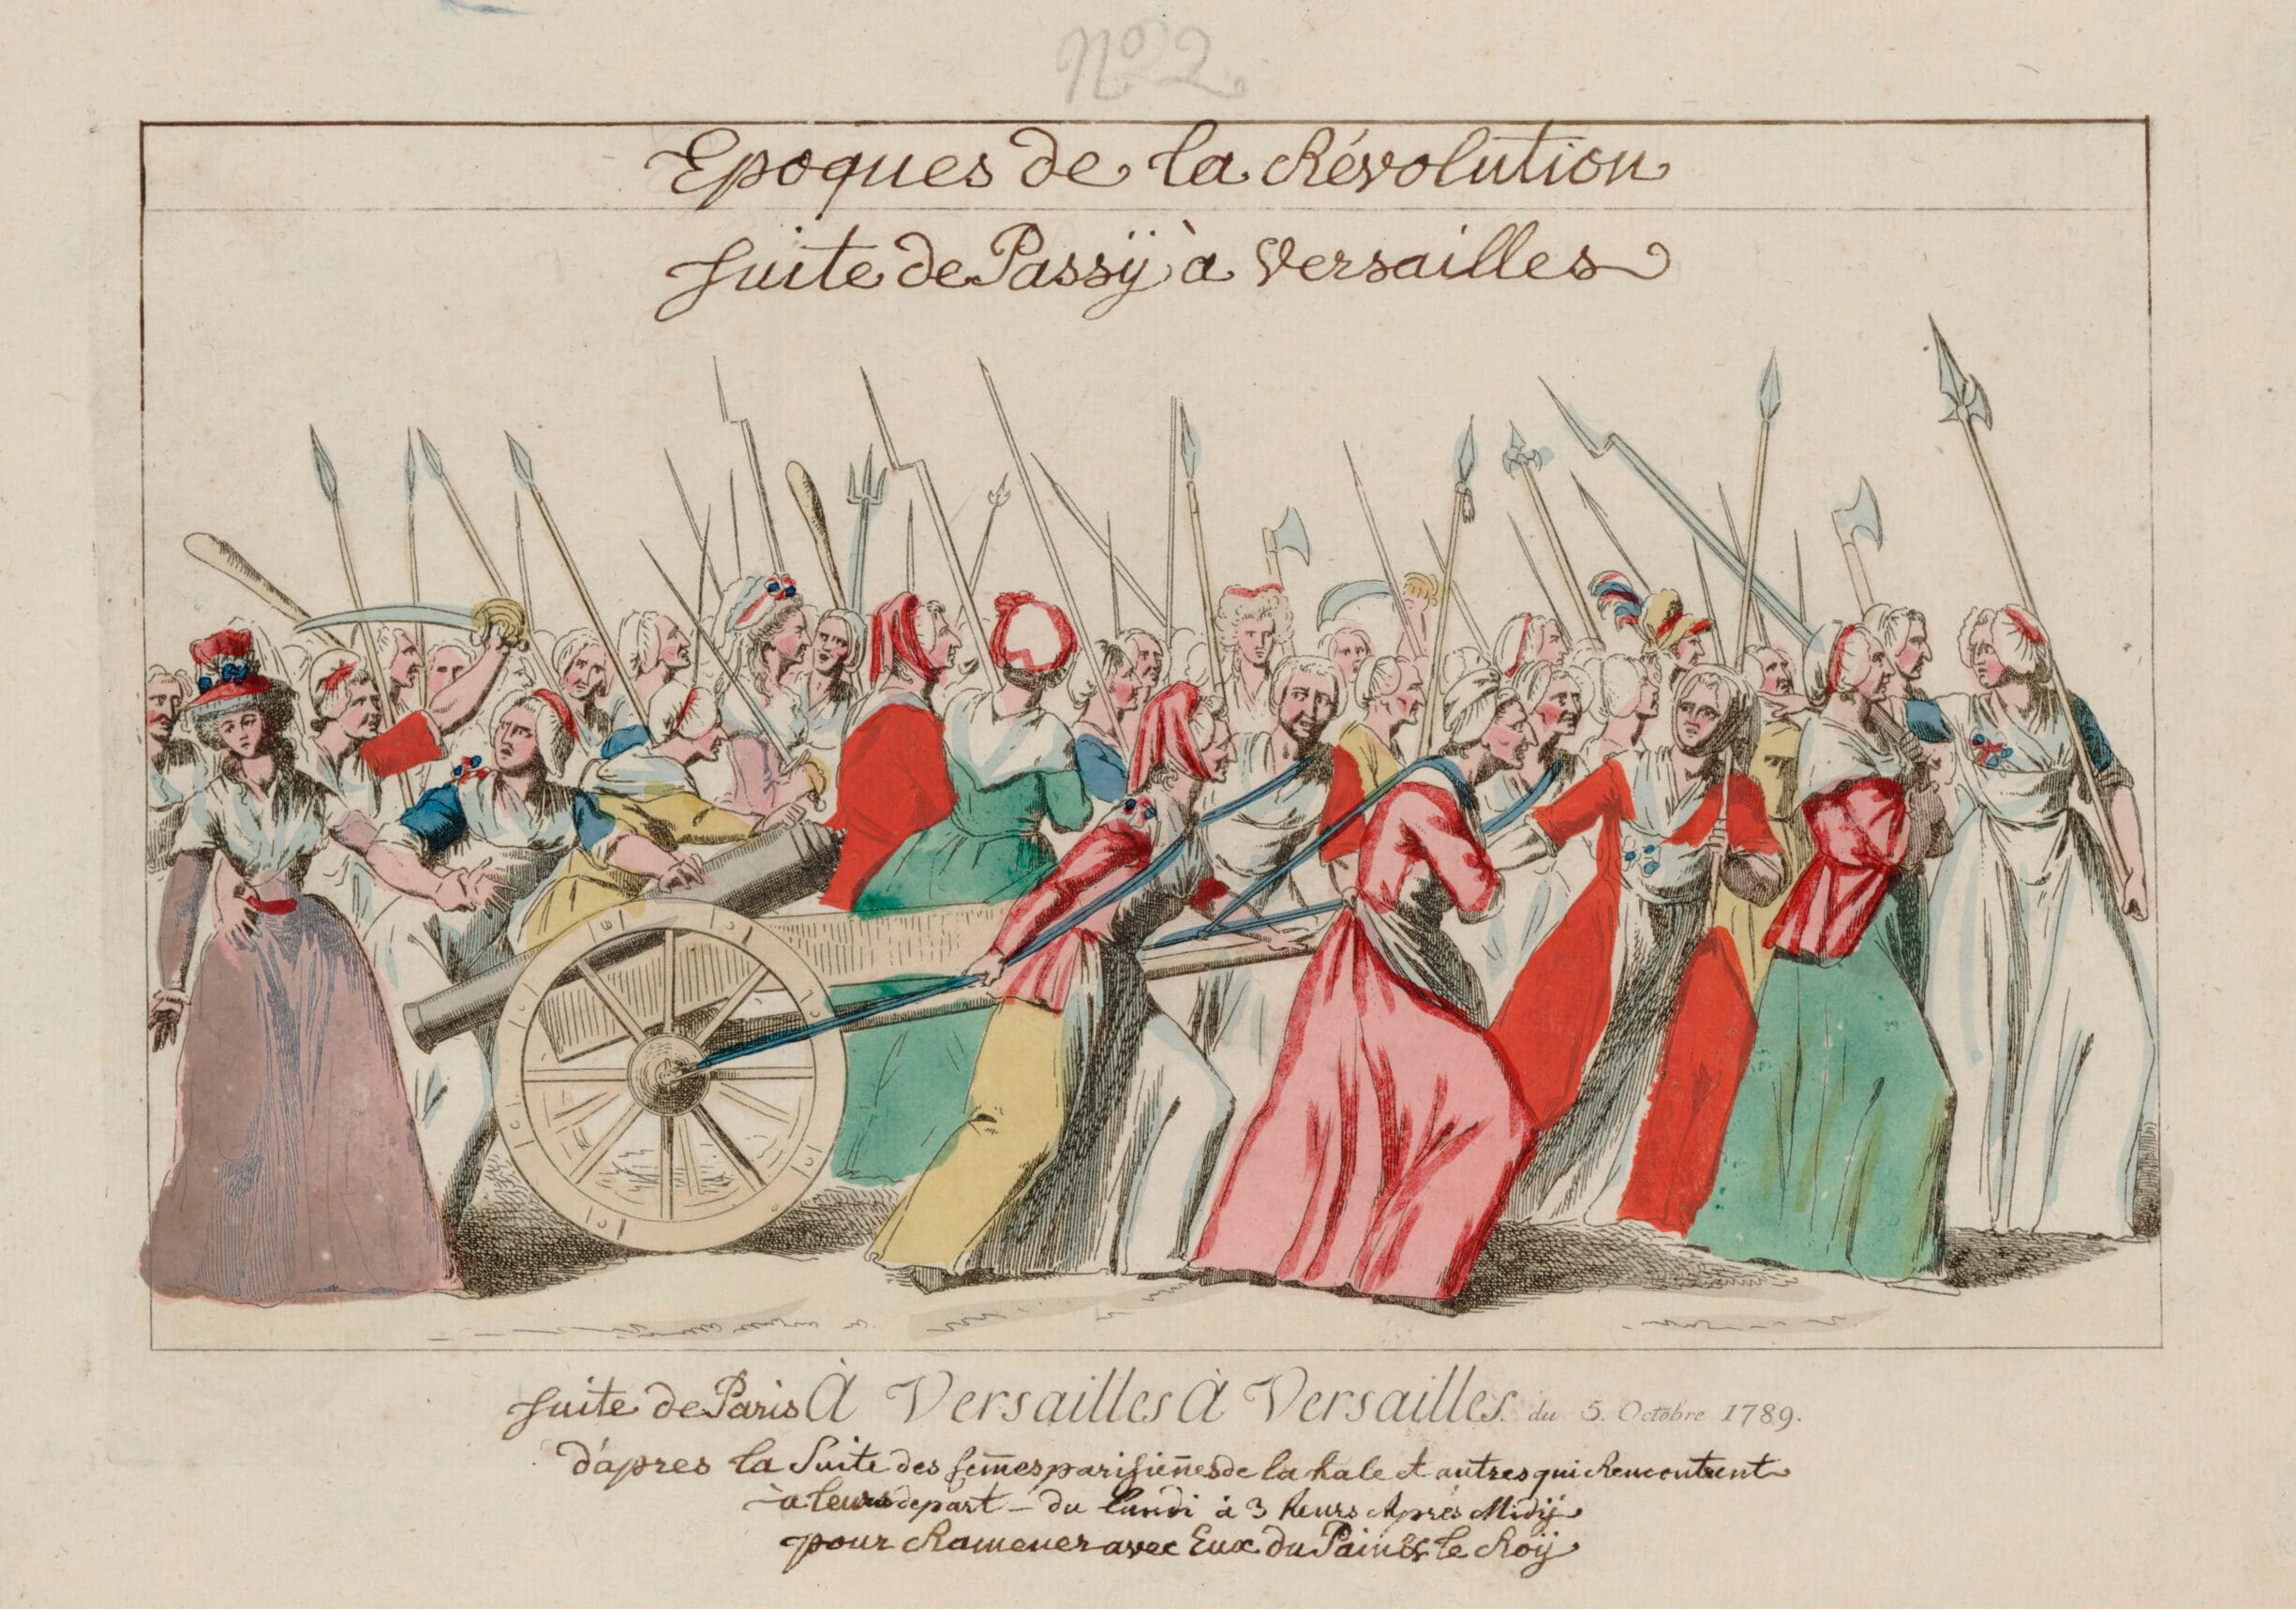 Women's march on Versailles October 5, 1789, An Attack on Versailles performed by the rioting women of Paris due to high prices on bread. A contemporary illustration of the Women's March on Versailles. October 5 or 6, 1789. Artist: Unknown. Collection: Gallica Digital Library. Public Domain.